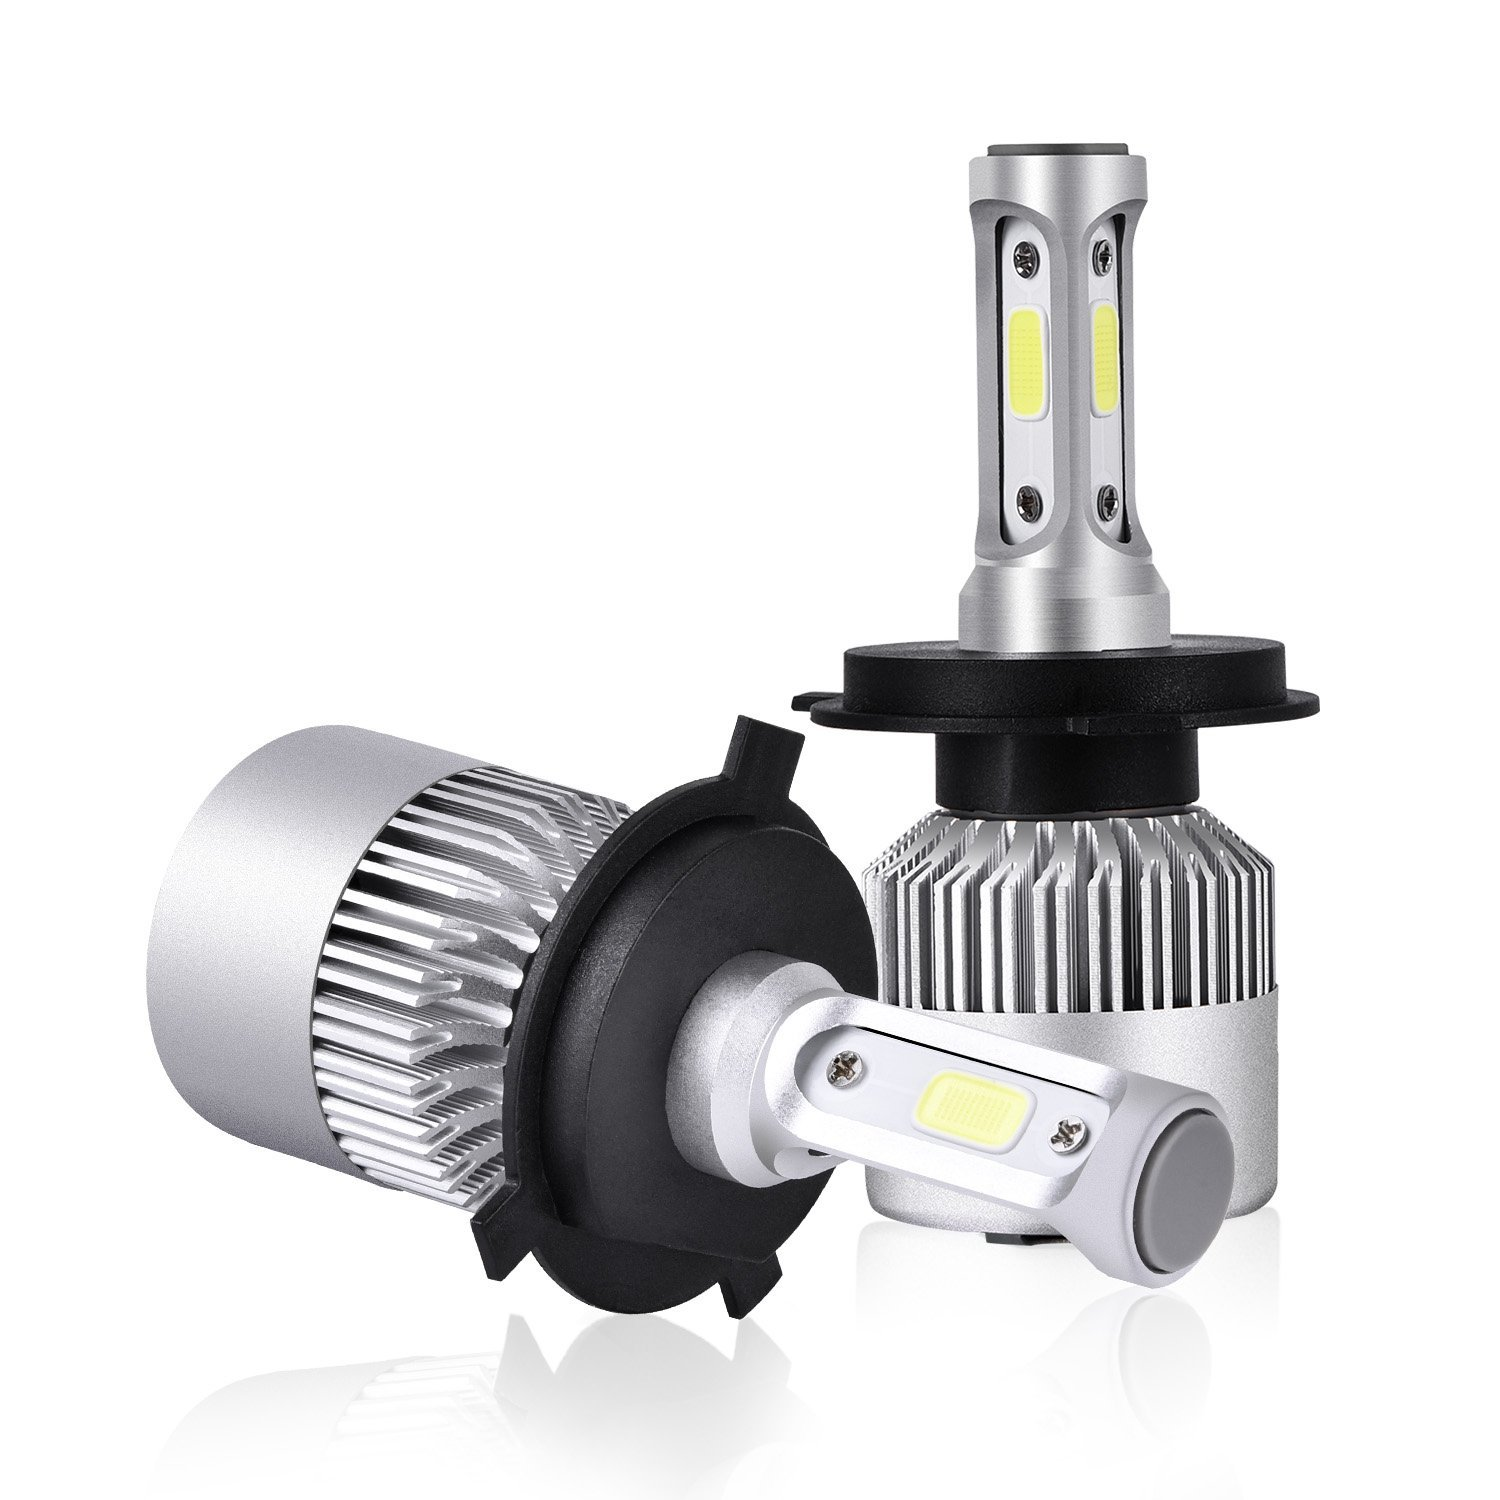 ACUMSTE H4/HB2/9003 100w LED Headlight Bulbs COB Chips High/Low Beam 100W 8000LM 6000K Cool White H4/HB2/9003 LED Headlight Bulbs Conversion Kit